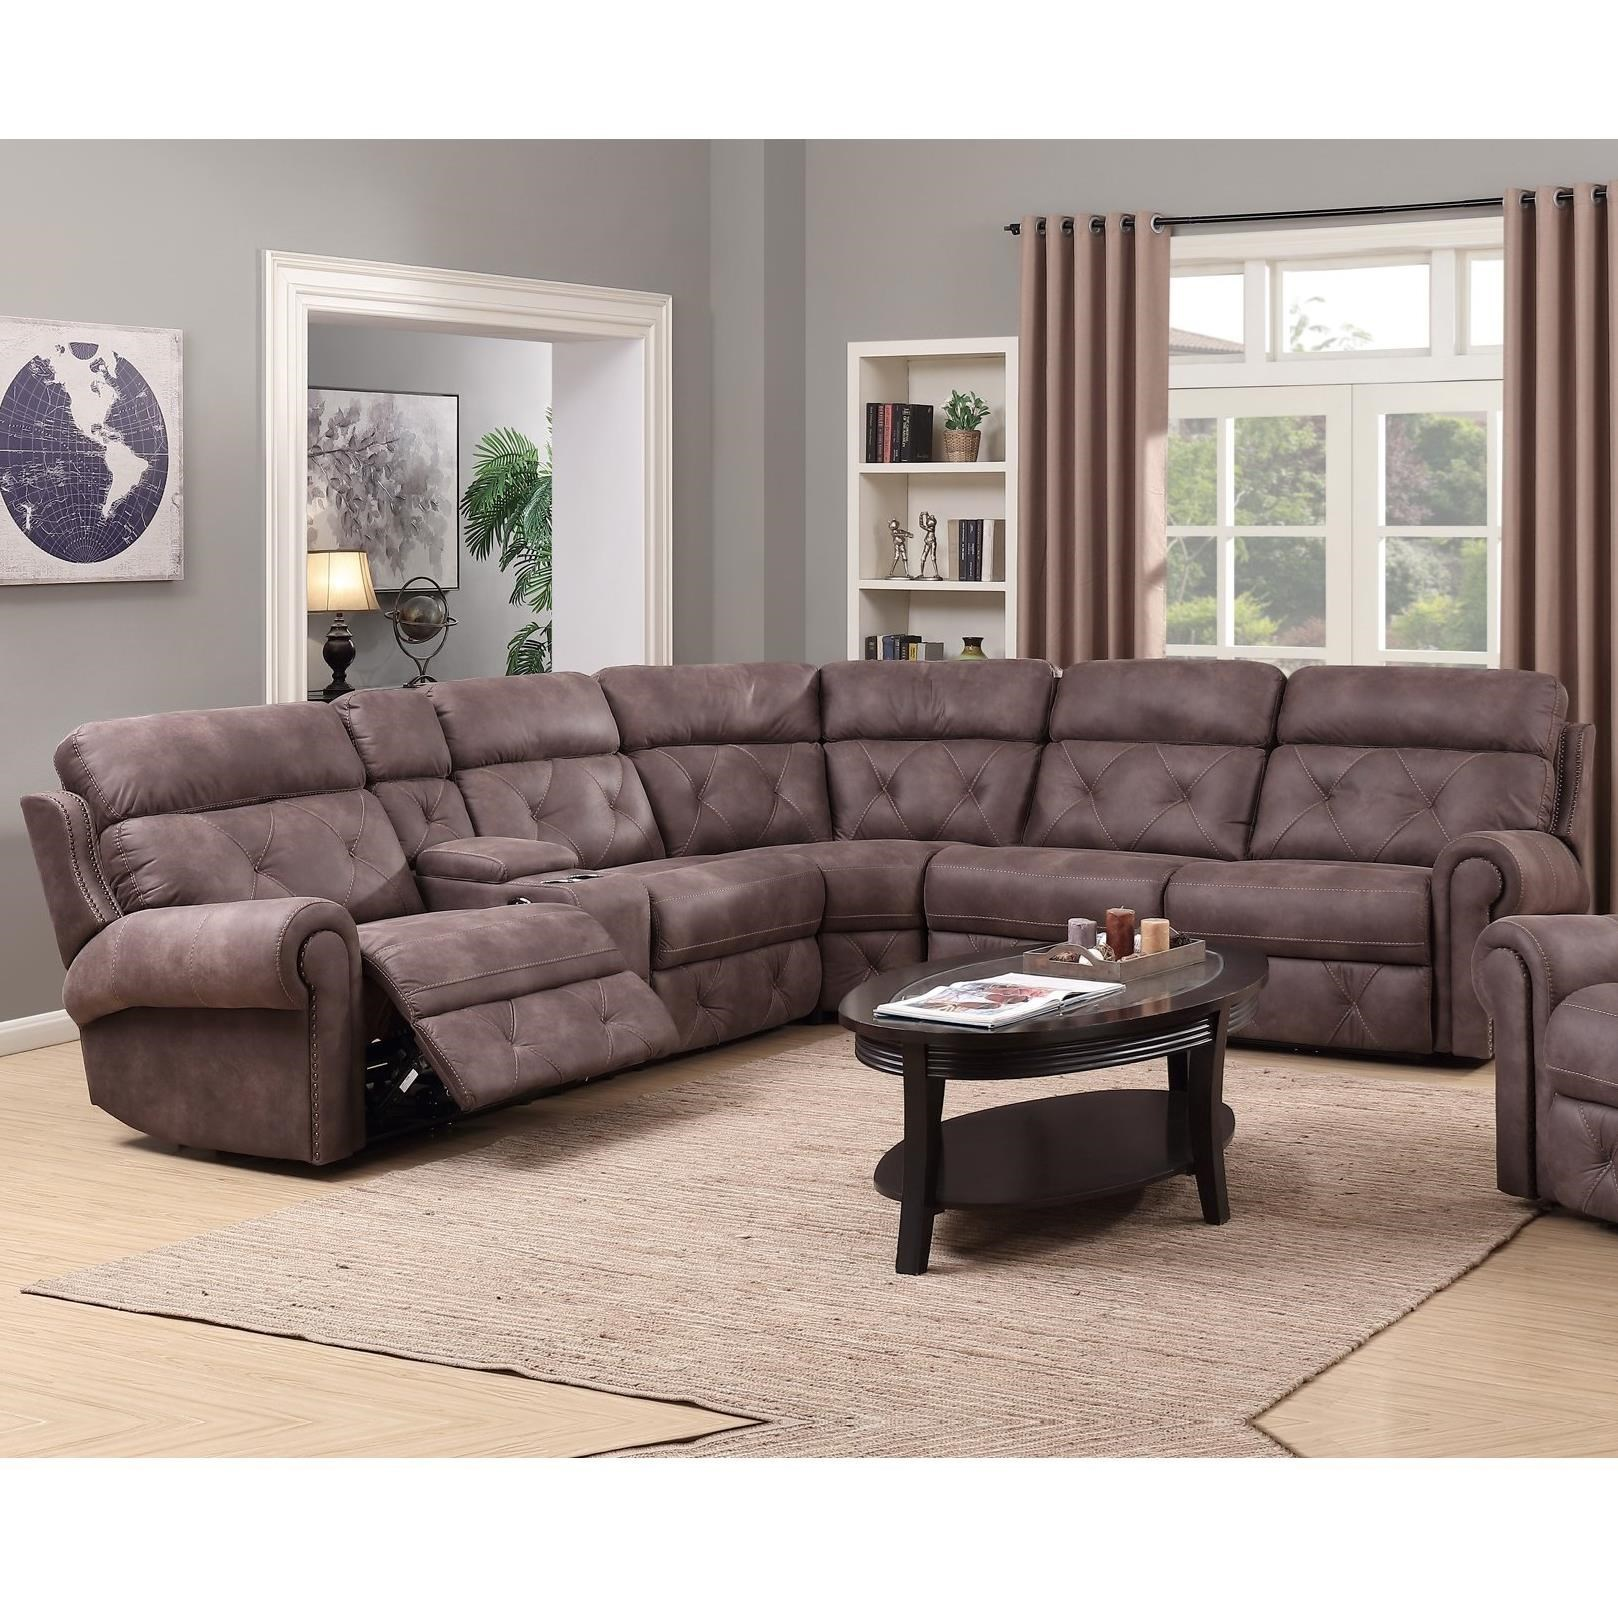 Happy Leather Company 1378Power Reclining Sectional ...